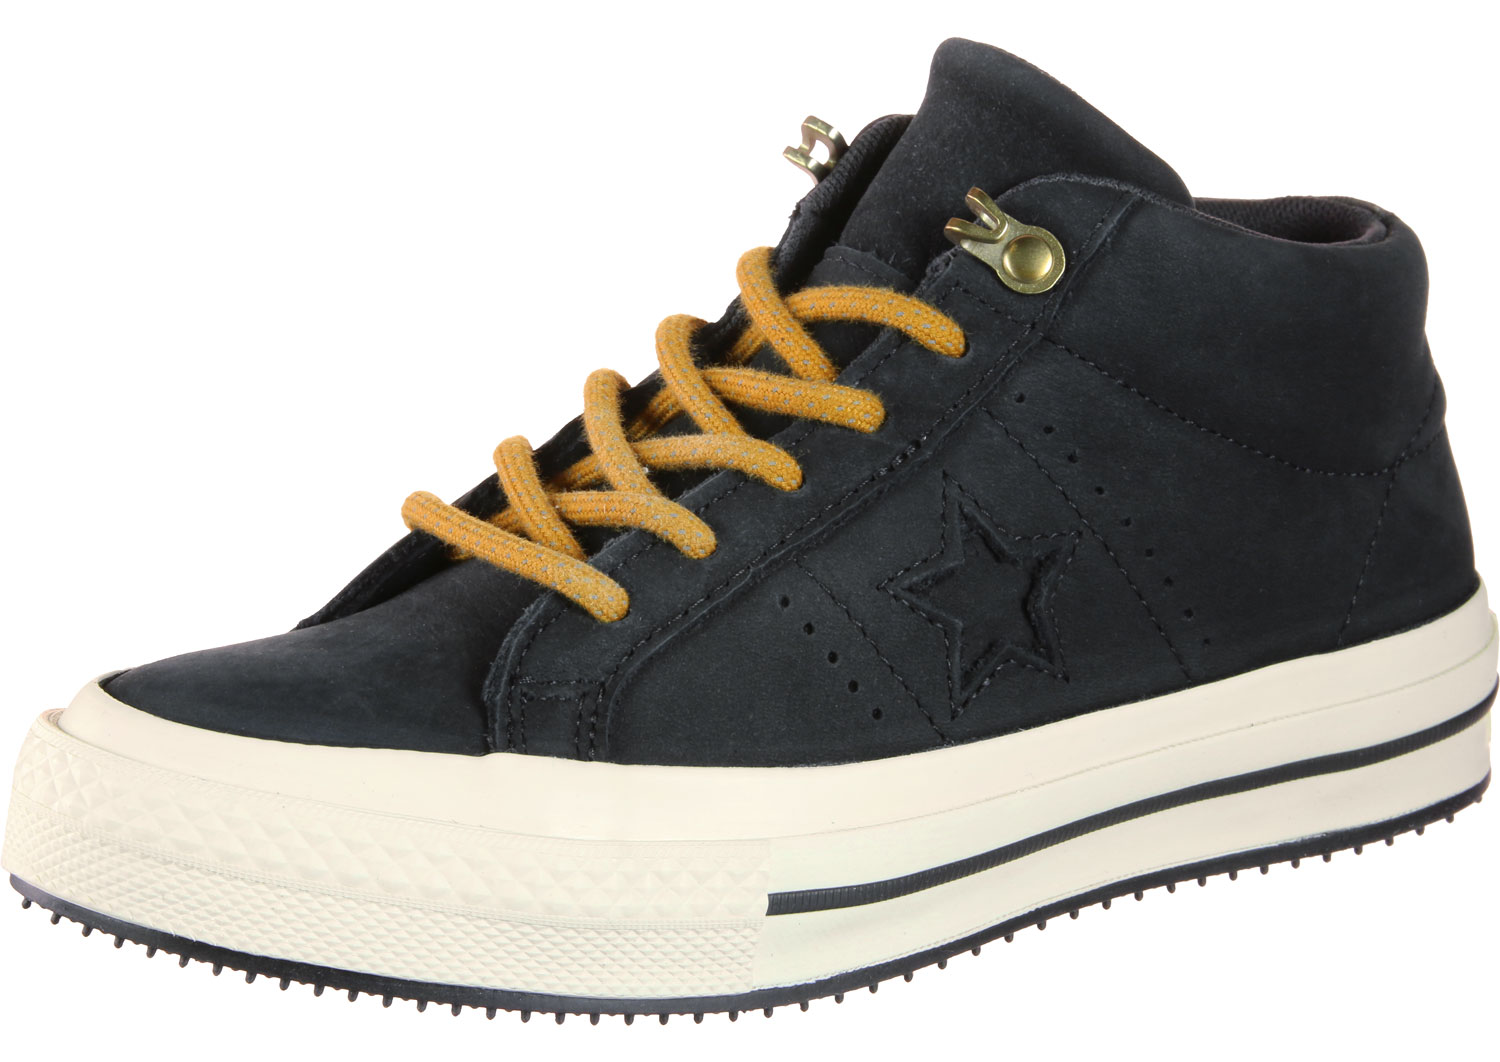 Converse One Star Mid Counter Climate